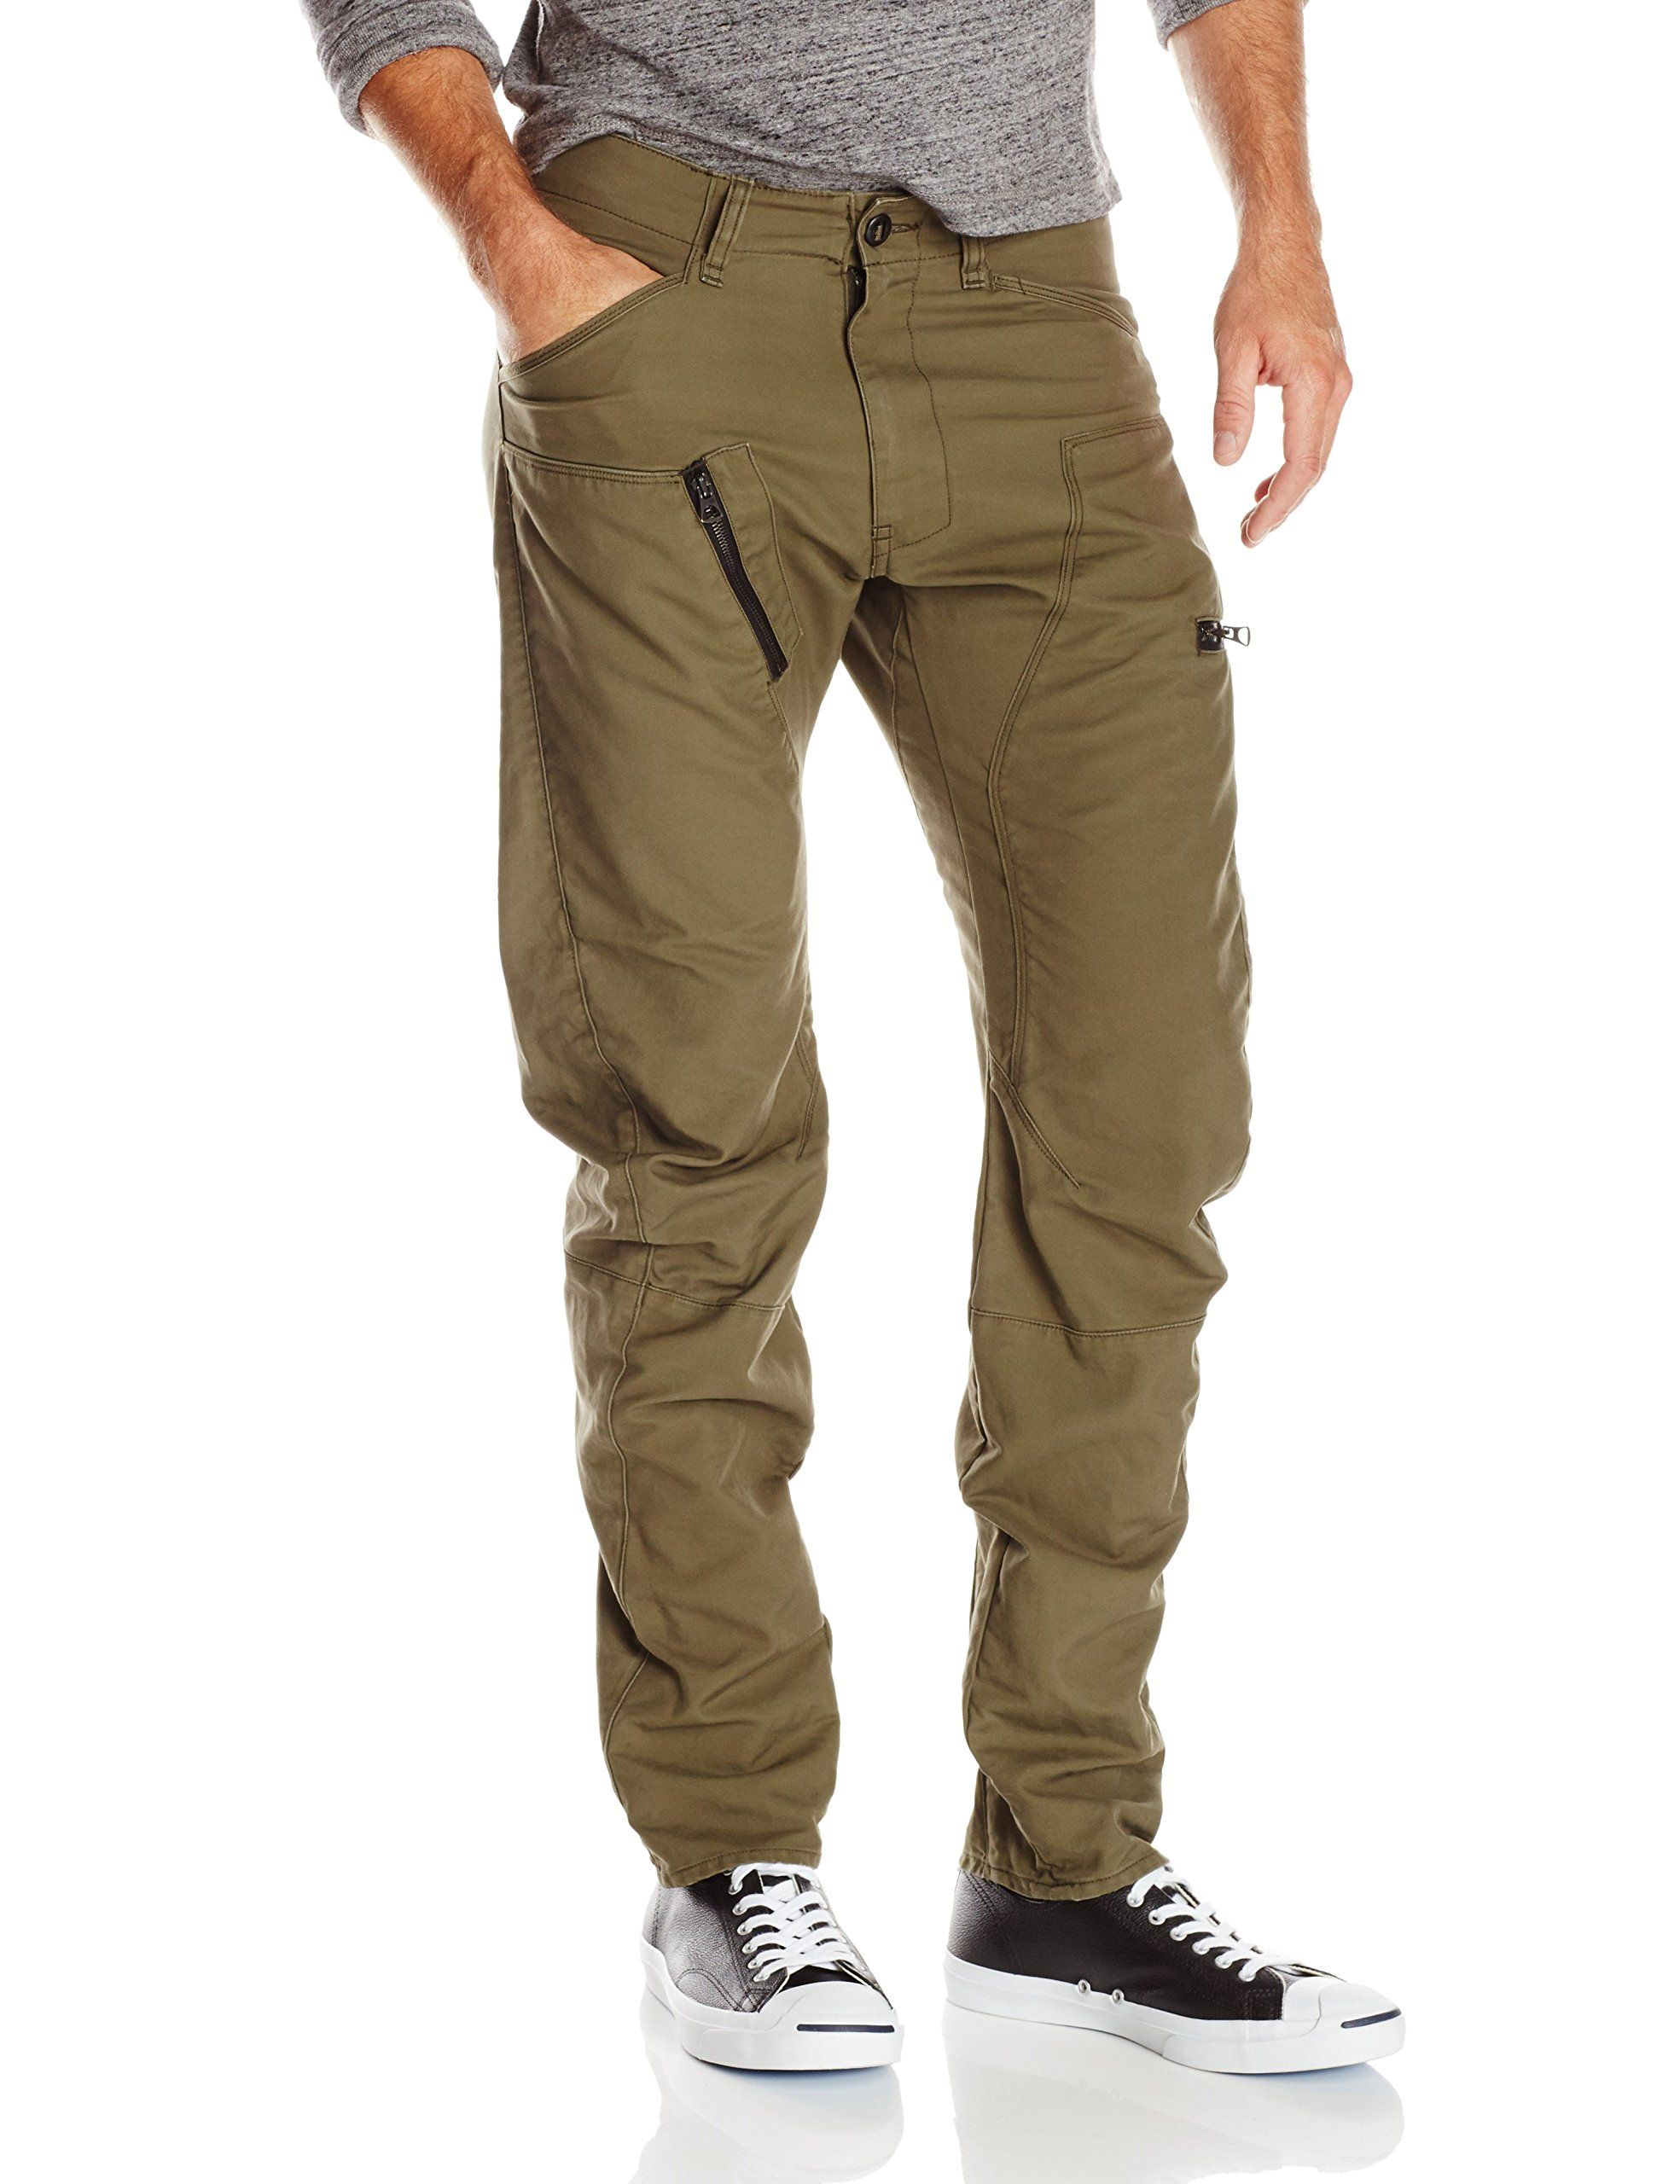 0d458b587b8 G-Star Raw Men's Powell Solar 3D Tapered Fit Pant Overdye, Combat, 38x32